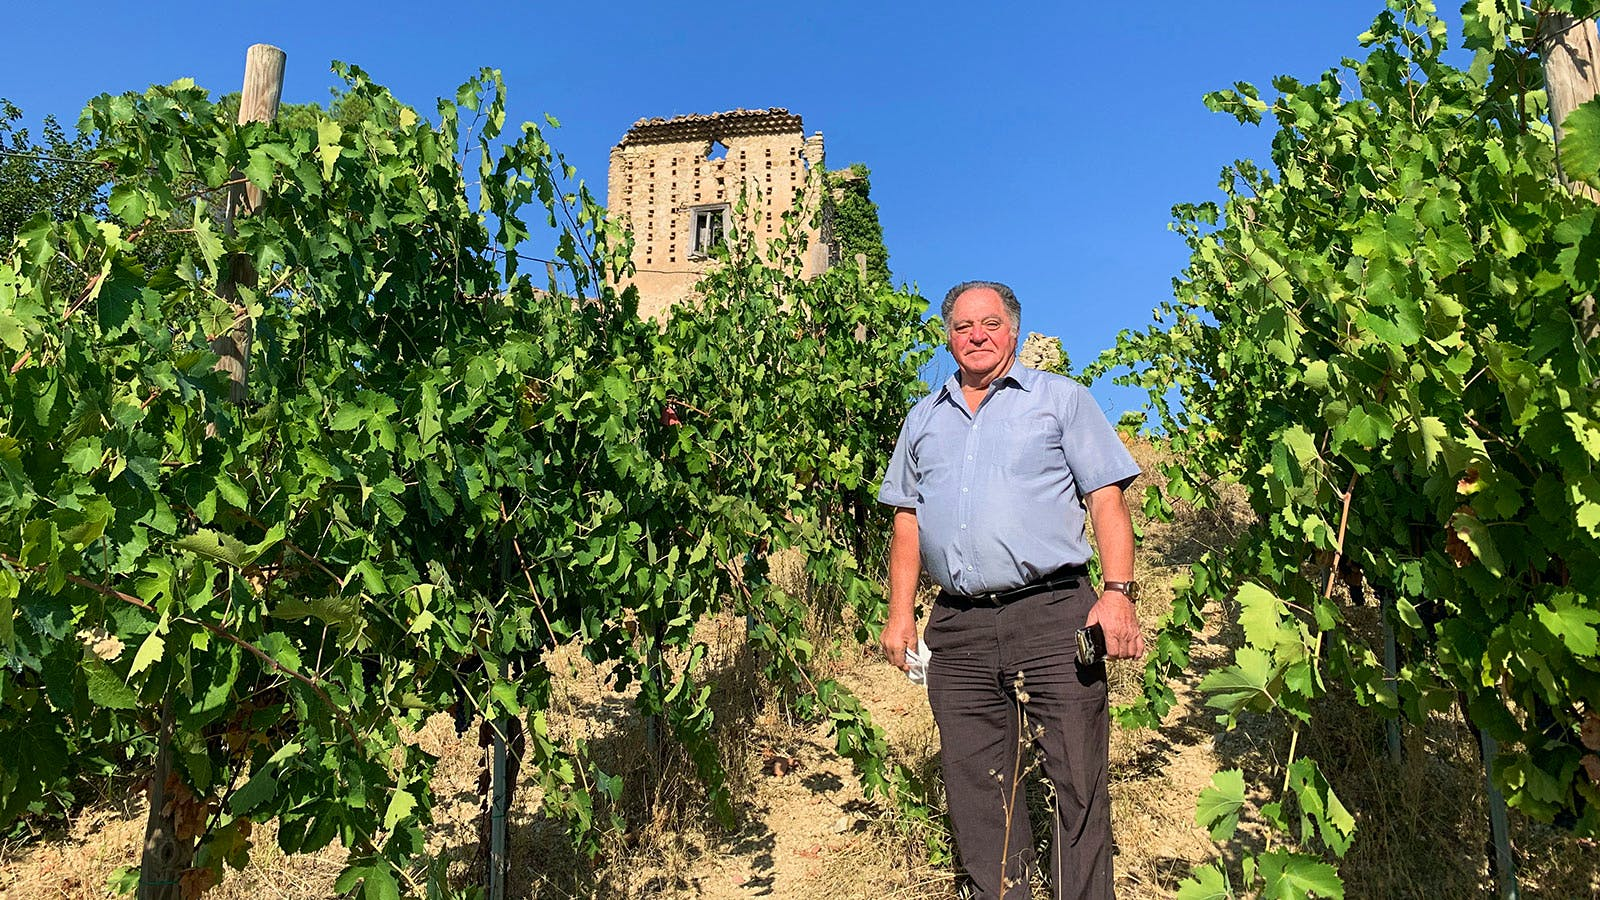 The Tractor of Montemarano (Touring Campania, Part 4)